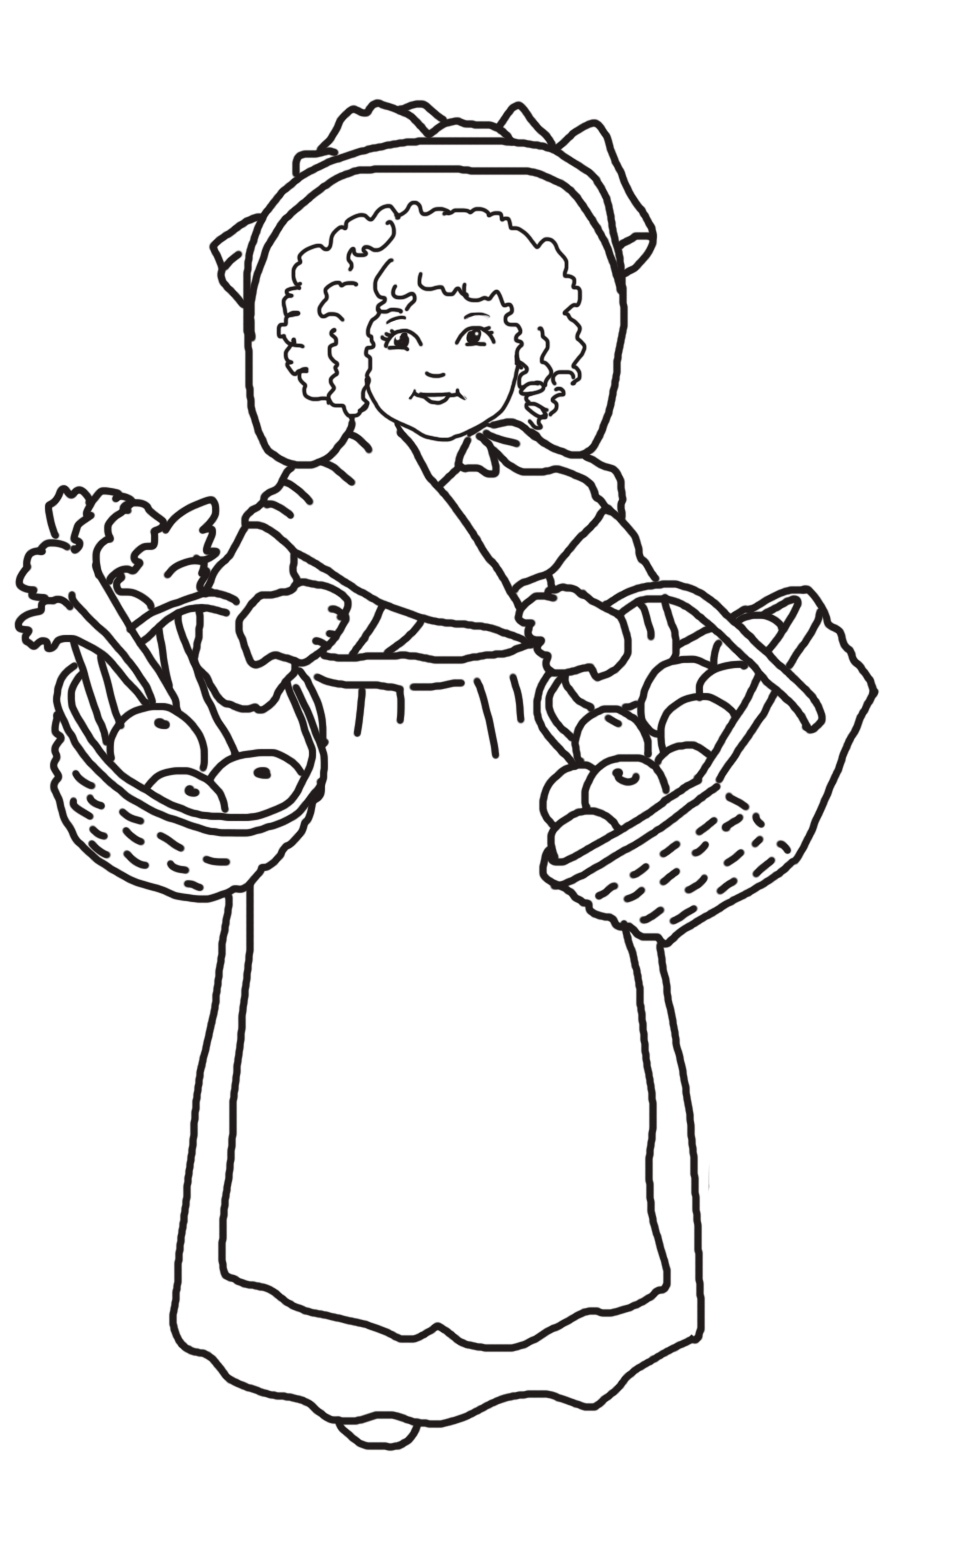 Girl With Thanksgiving Baskets Fruit Vegetables Coloring Pages